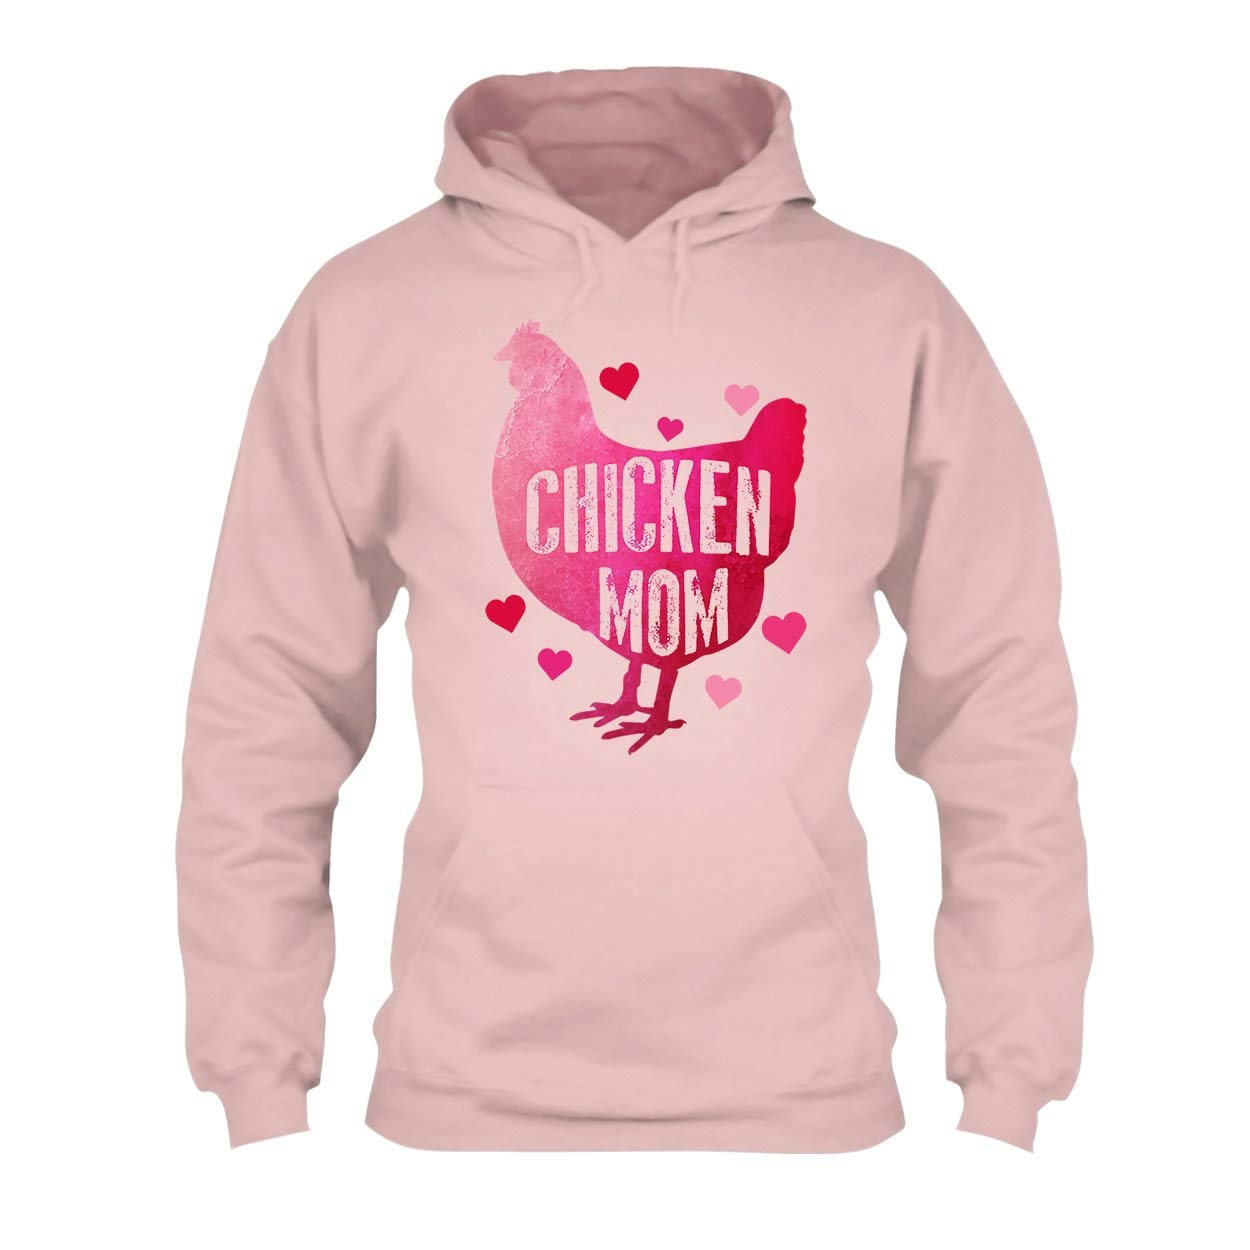 In Prink Chicken Mom T Shirt Sweatshirts Tee Shirt